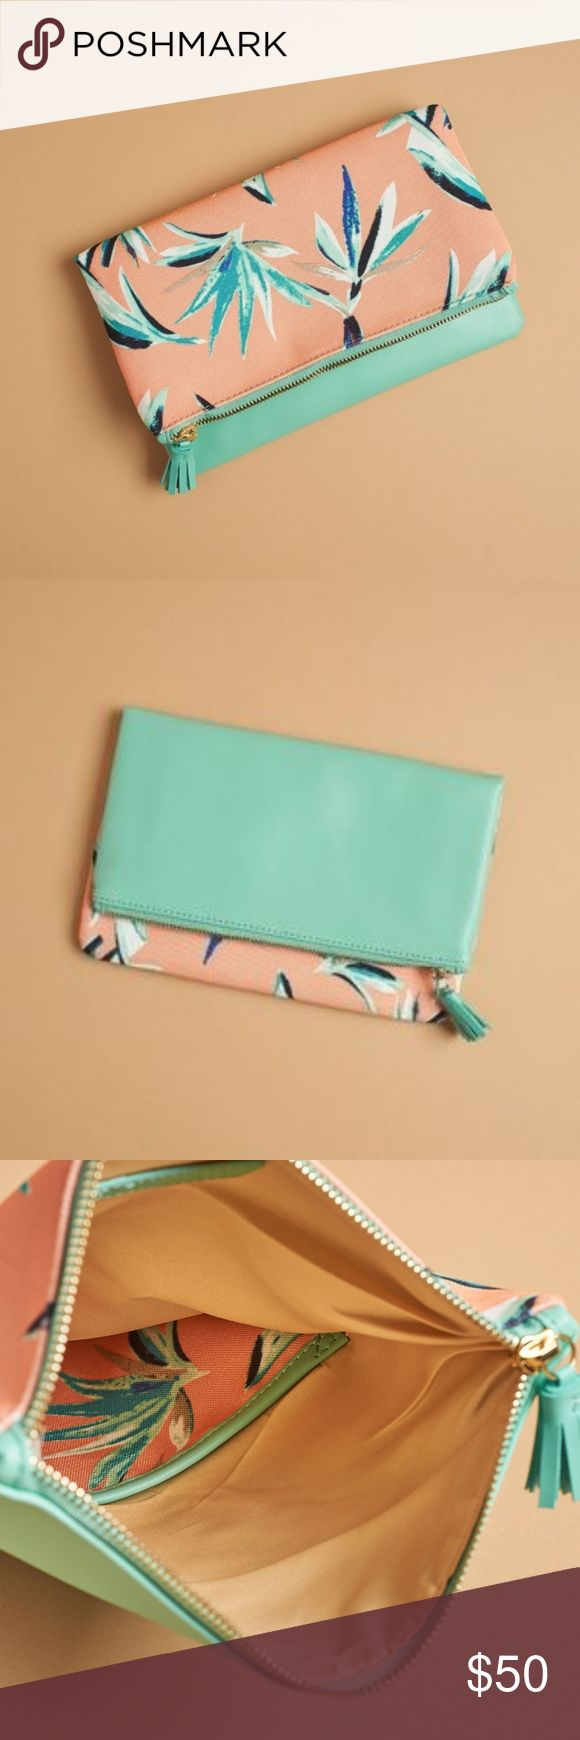 Rachel Pally Reversible Clutch Brand New!!! Adorable reversible clutch with teal blue and pink  Comes with the cloth case, never used Rachel Pally Bags Clutches & Wristlets